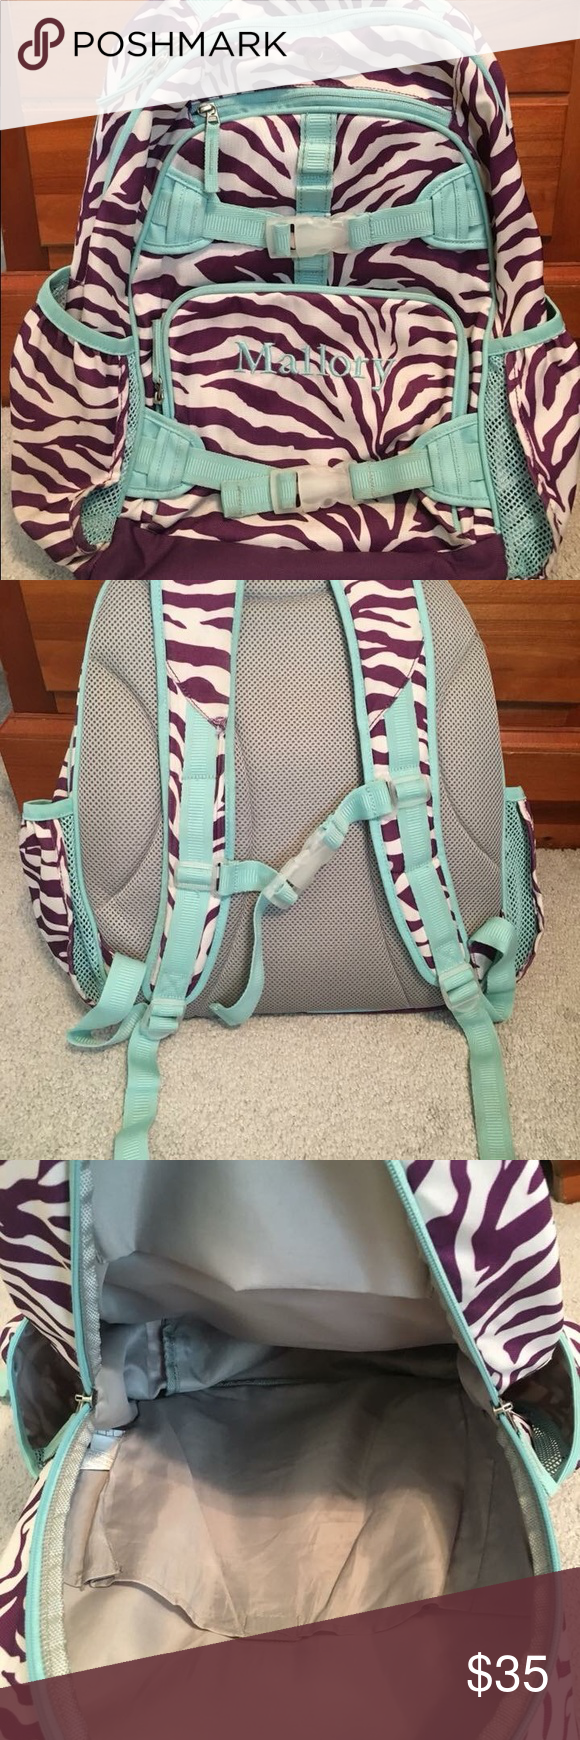 Pottery Barn Backpack Amp Lunchbox W Mallory Pottery Barn